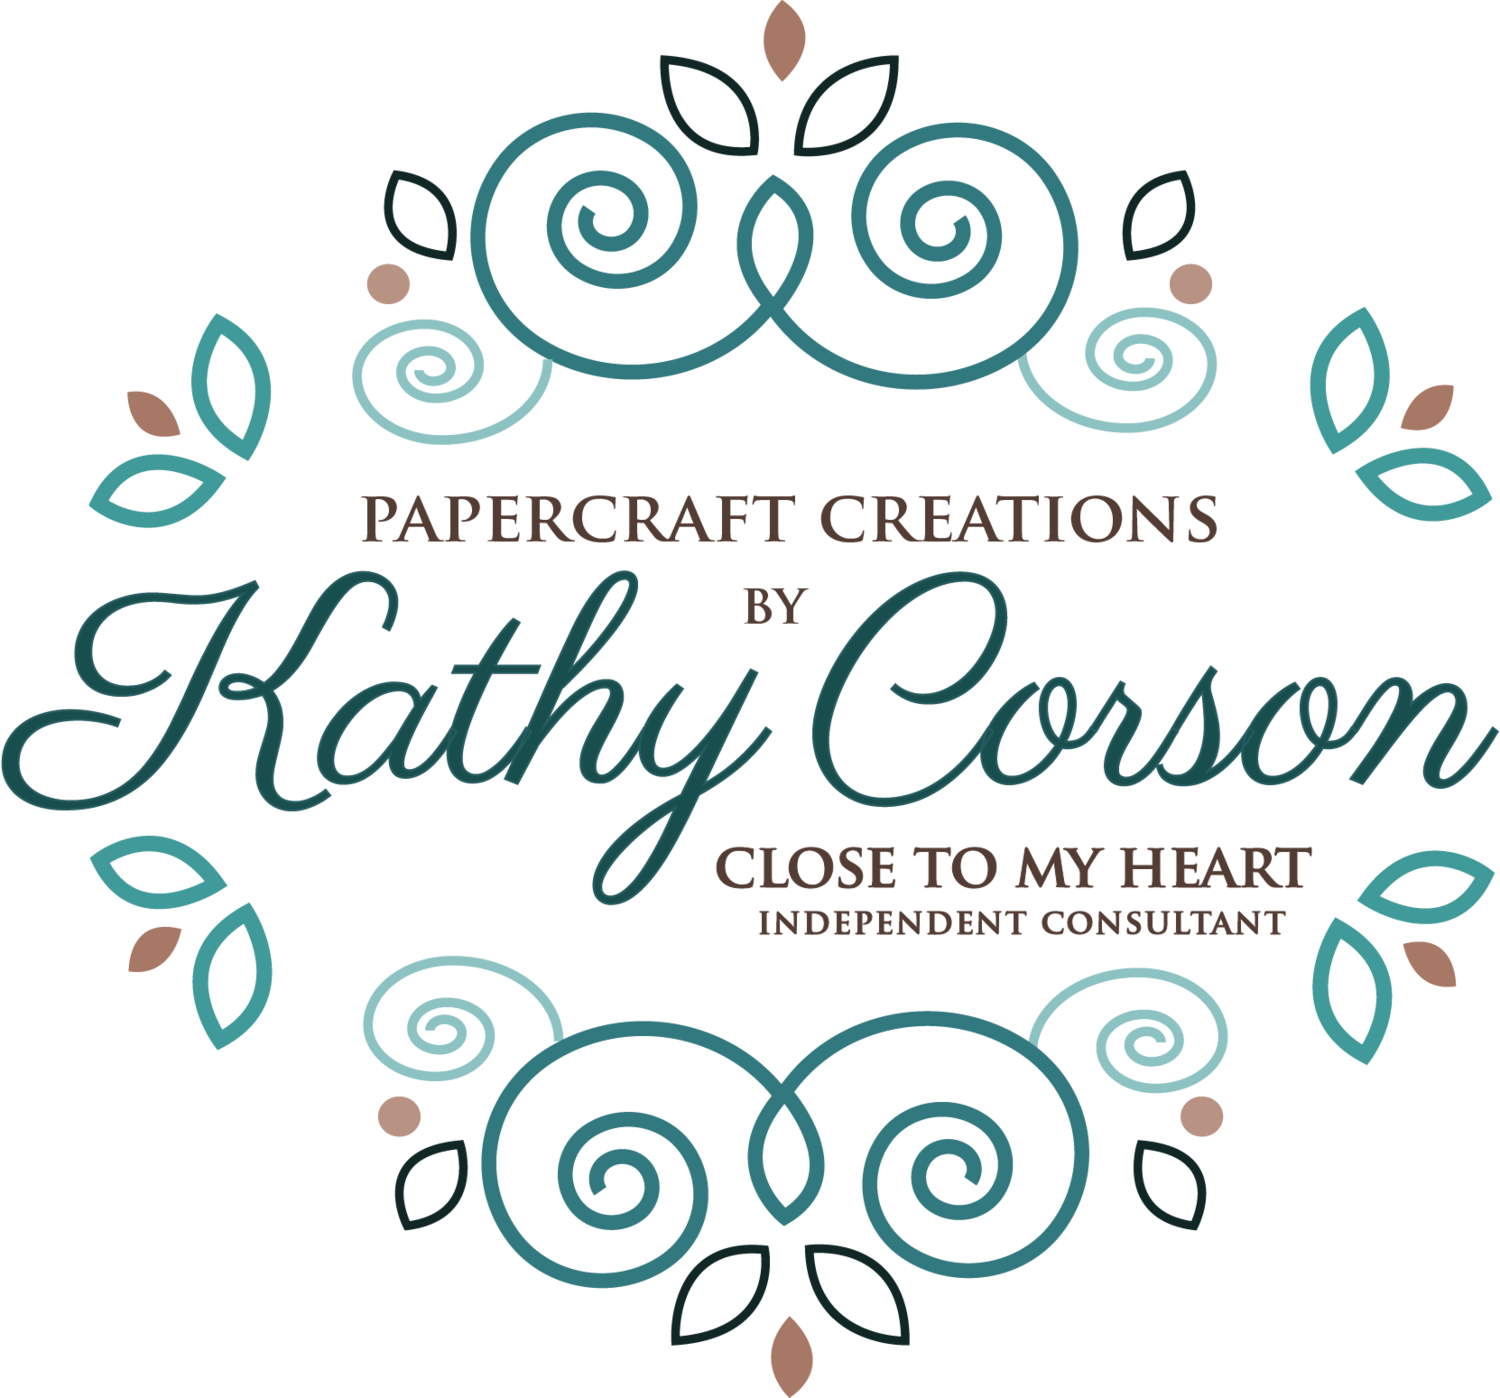 Papercraft Creations by Kathy Corson